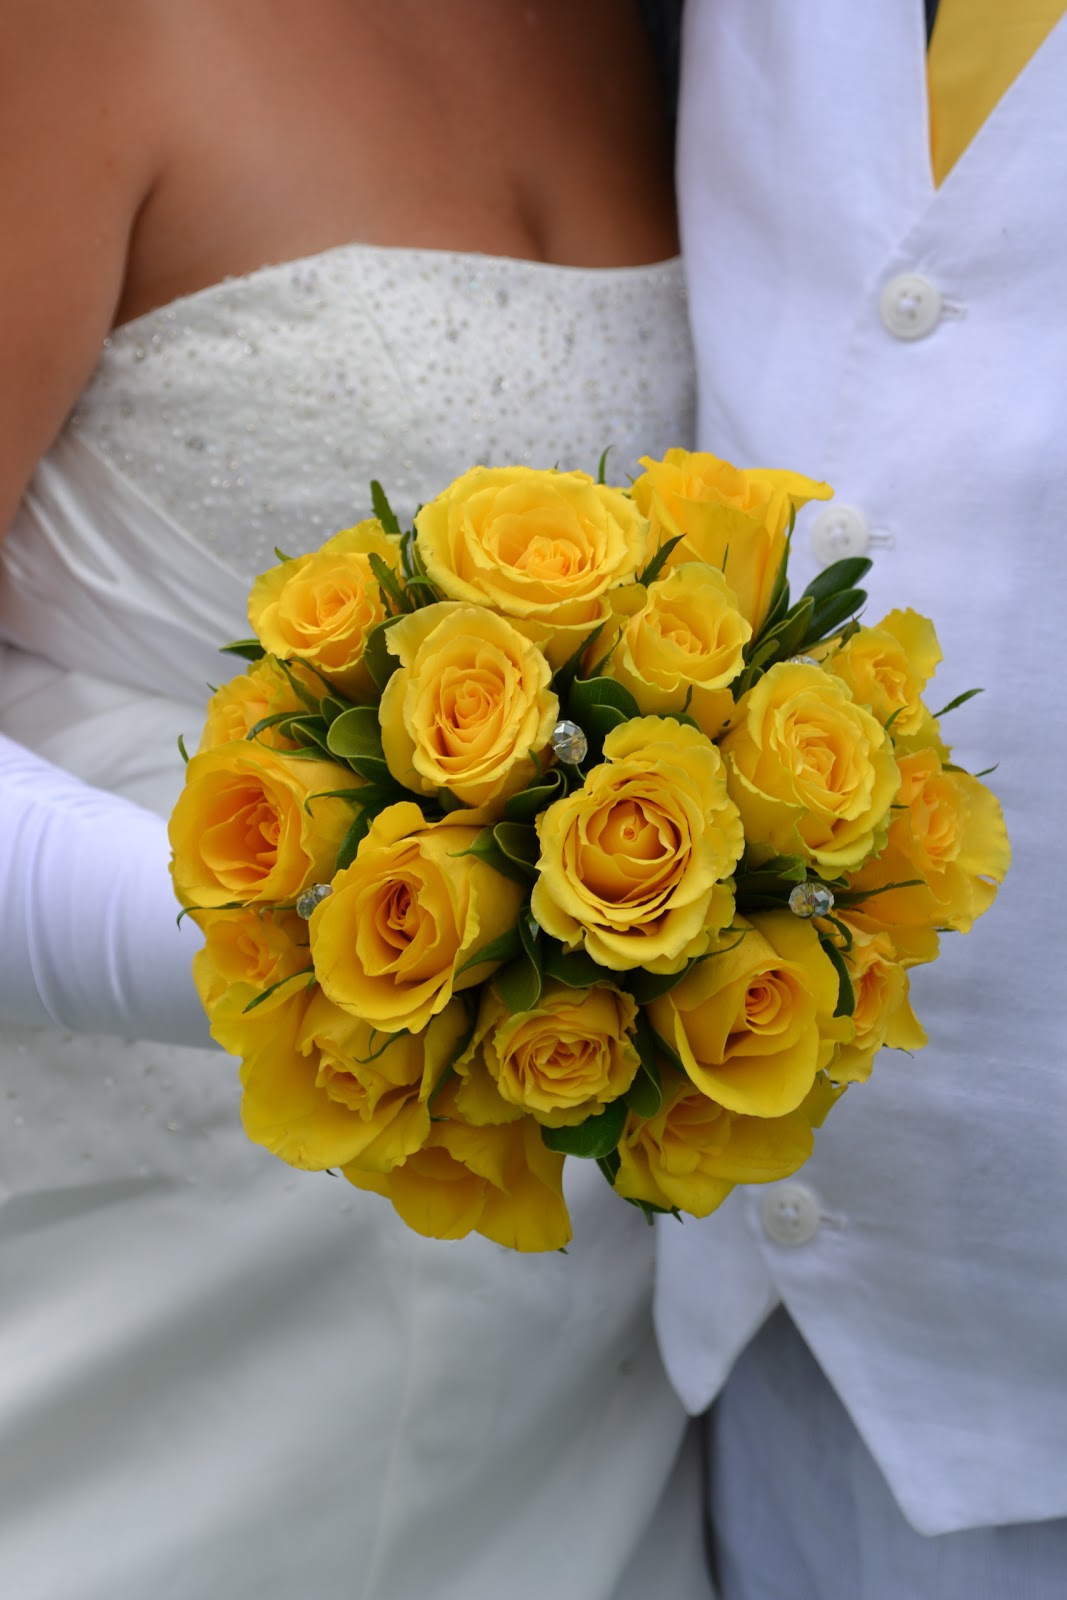 Flowers of the Day: Yellow Roses